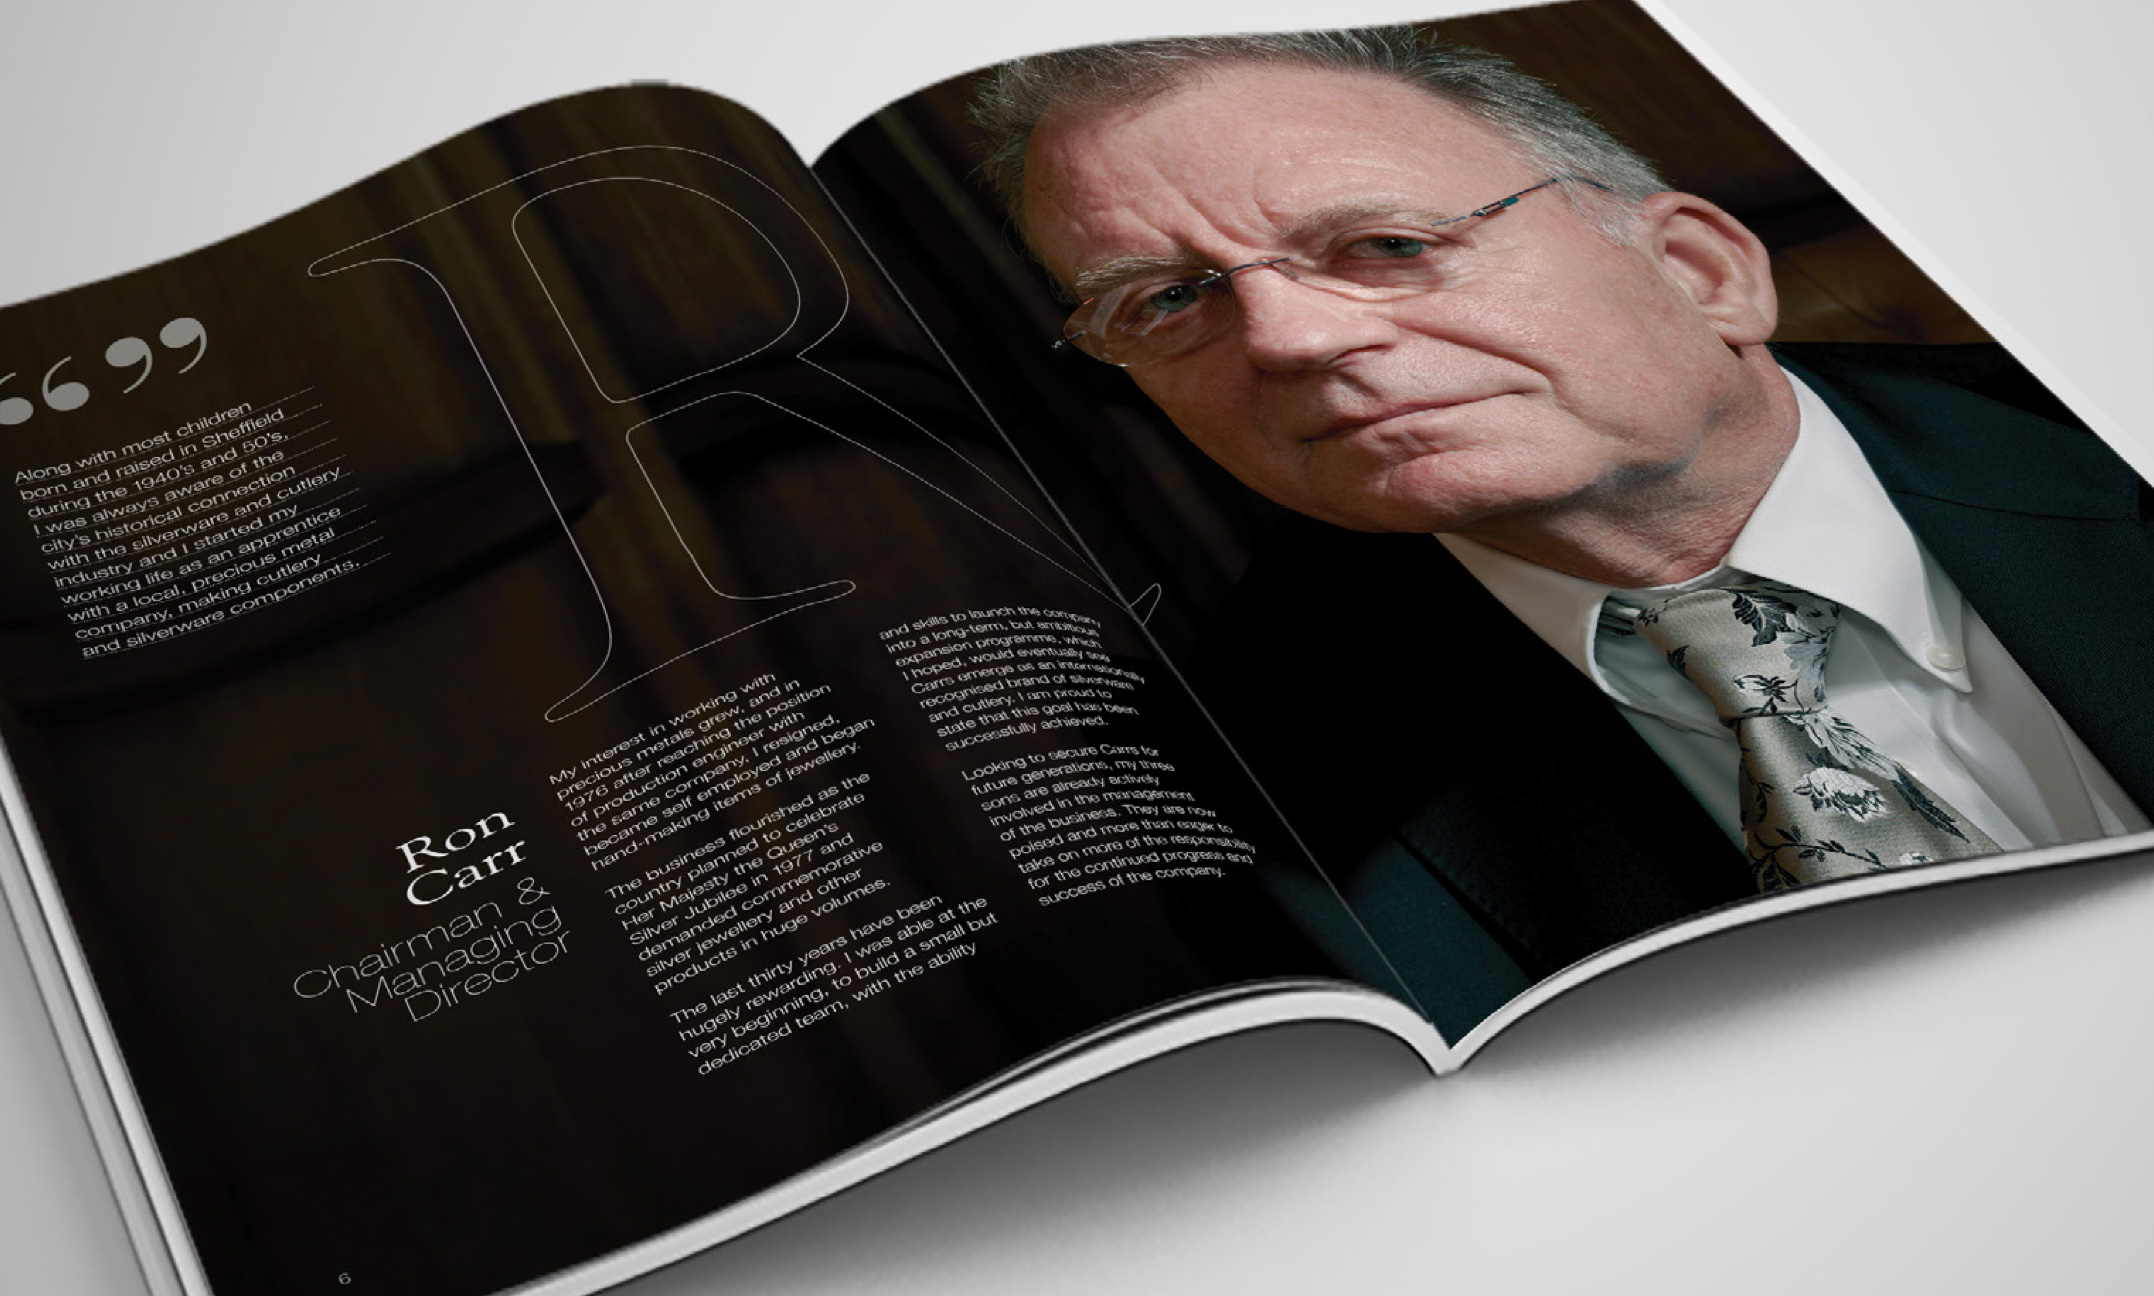 Interview with Ron Carr, Chairman & Managing Director of Carrs Silver), in a brochure